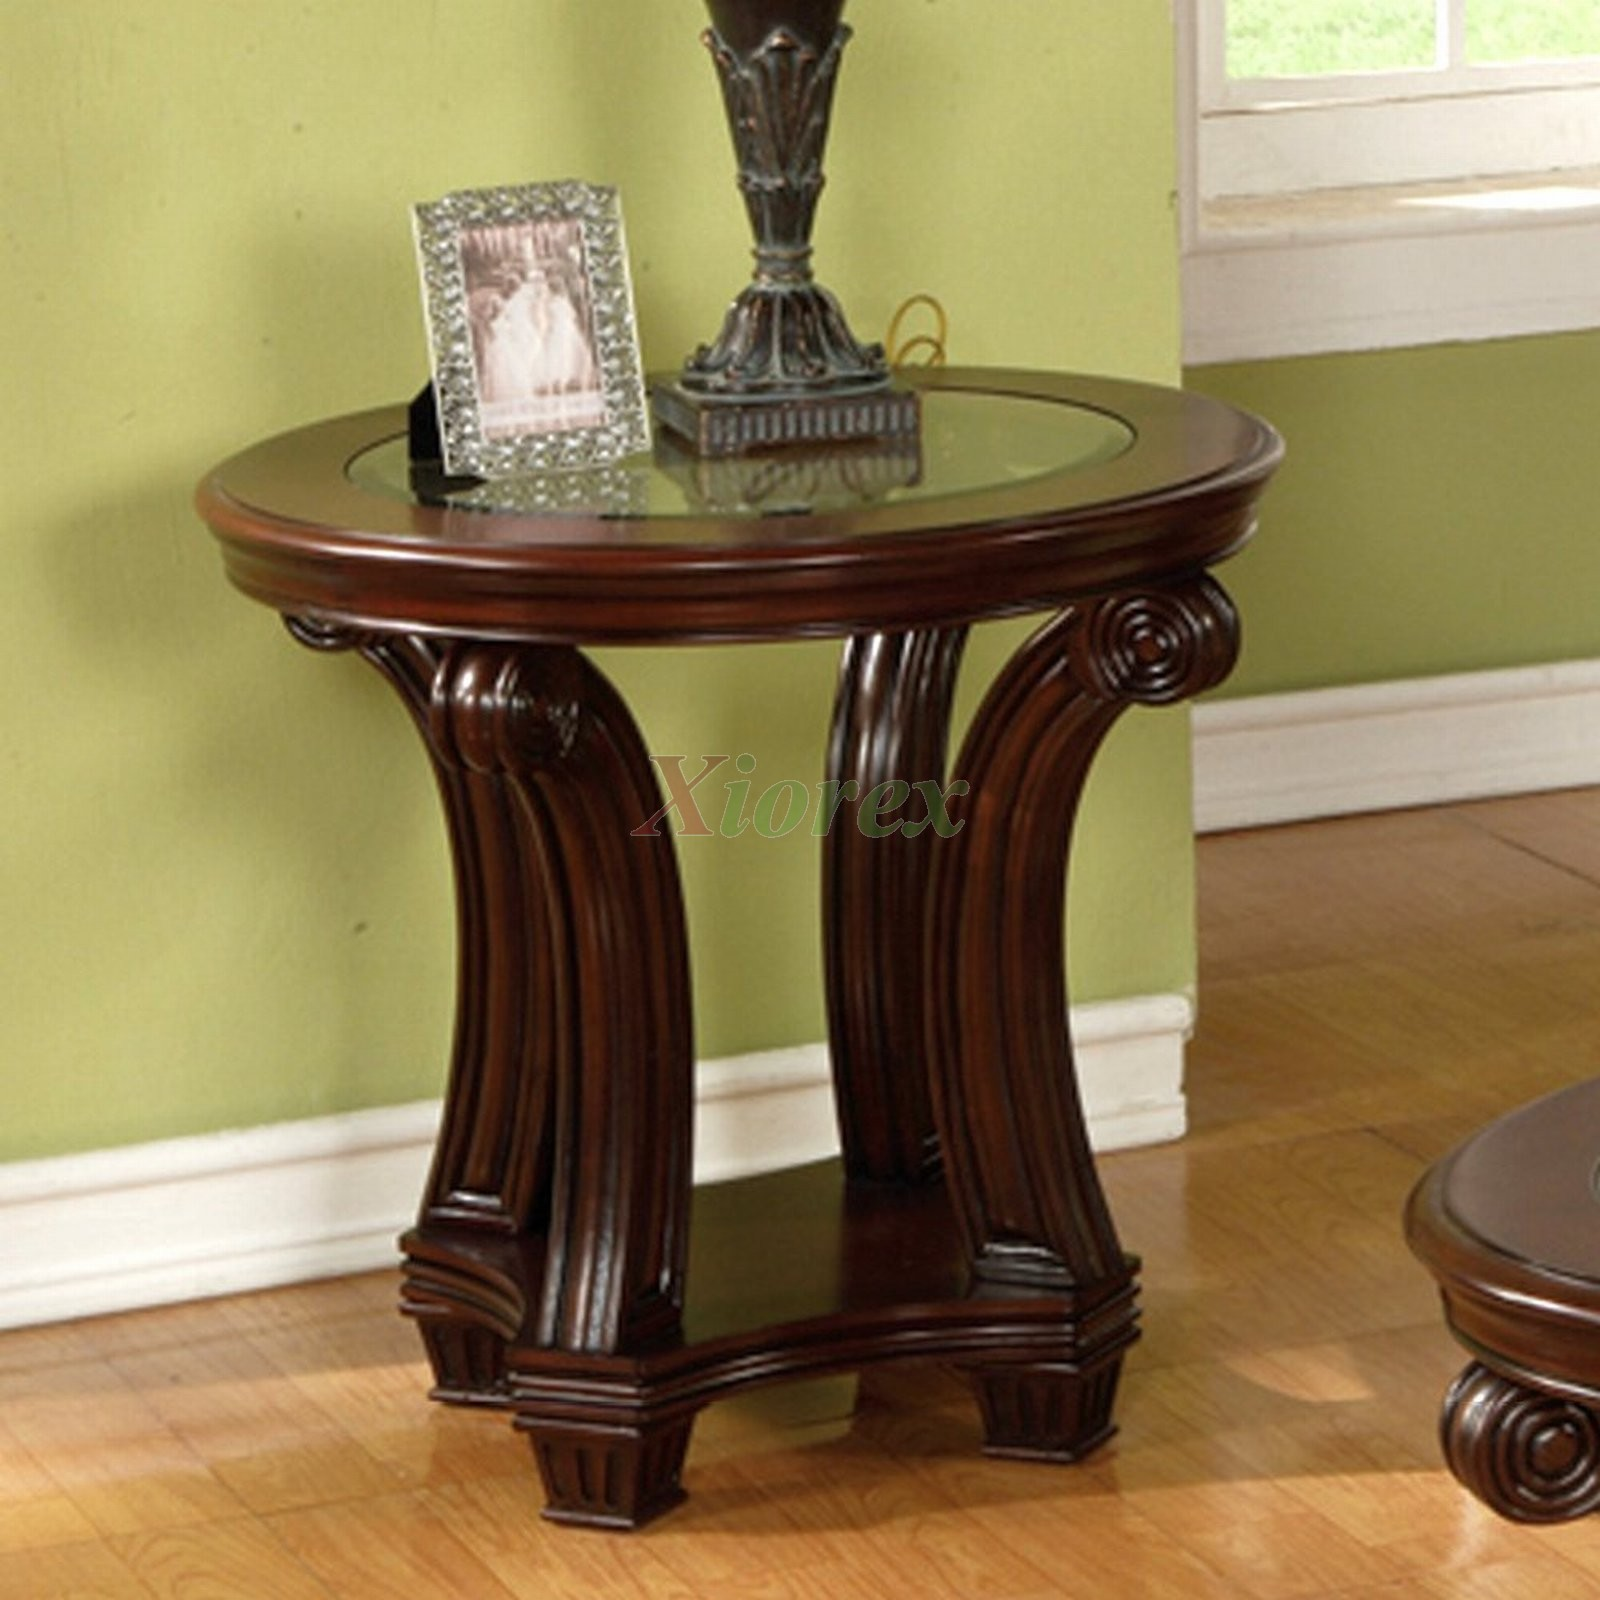 living room round table high end chairs perseus furniture montreal xiorex jpg